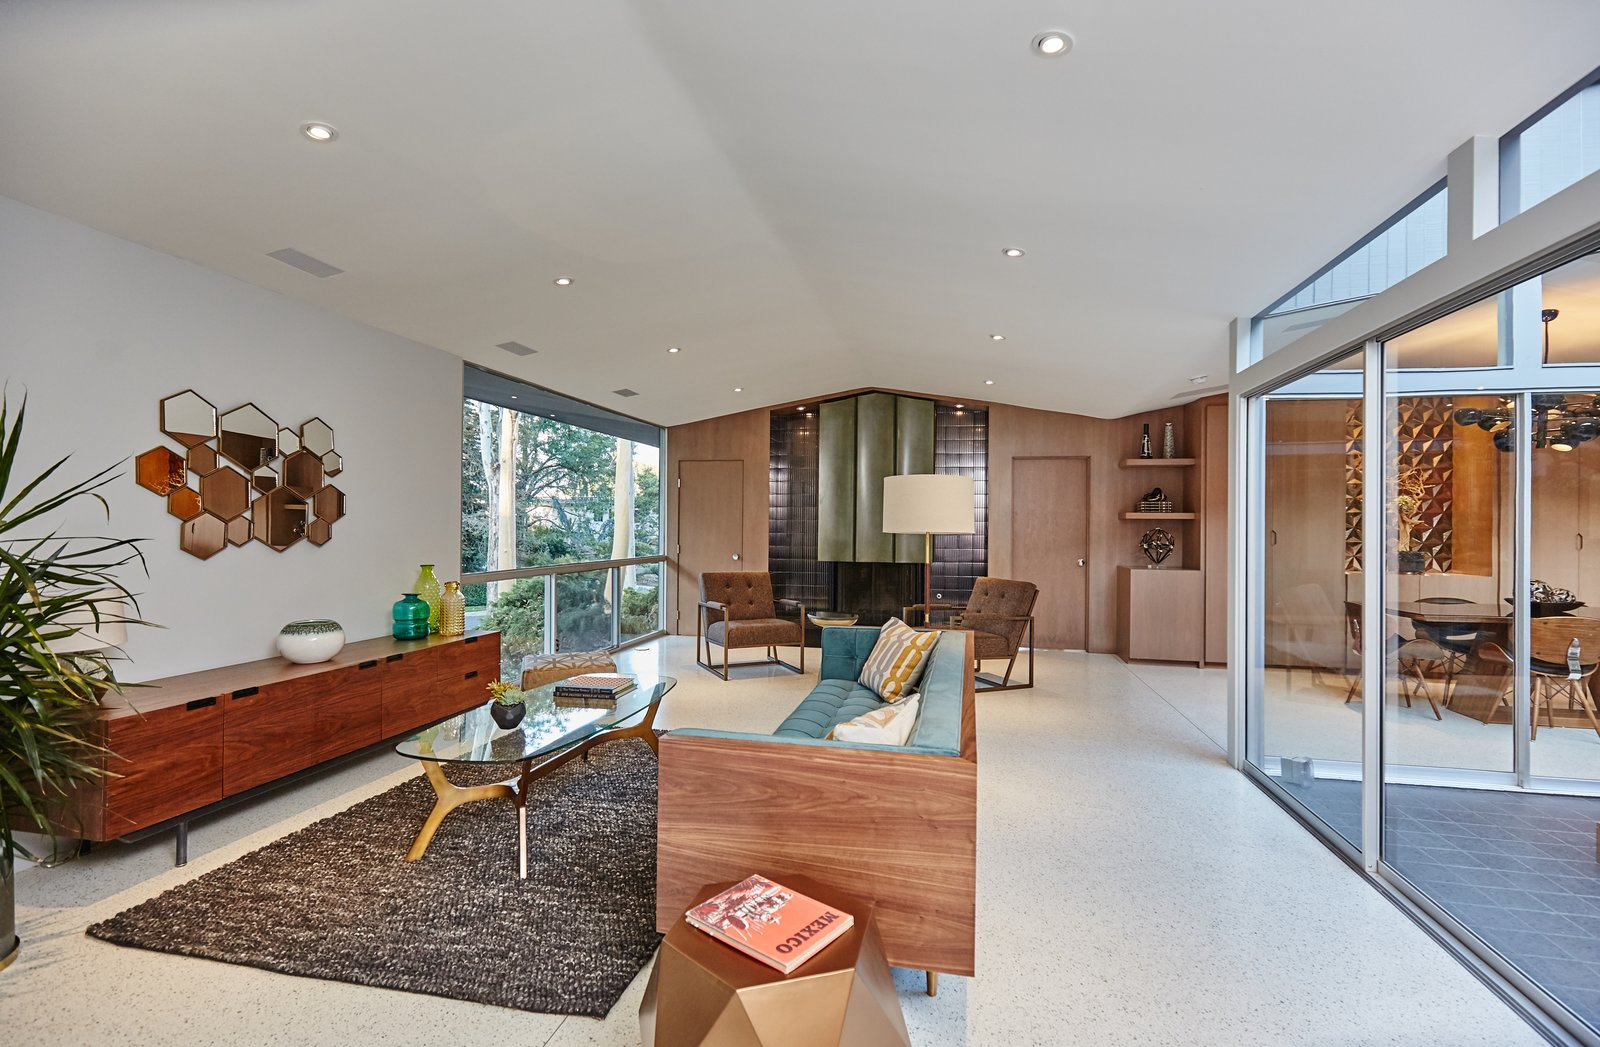 Living Room, Sofa, Chair, Coffee Tables, Console Tables, Floor Lighting, Terrazzo Floor, and Standard Layout Fireplace  Photo 3 of 10 in A Hexagonal Midcentury Residence in Southern California Offered at $2.89M